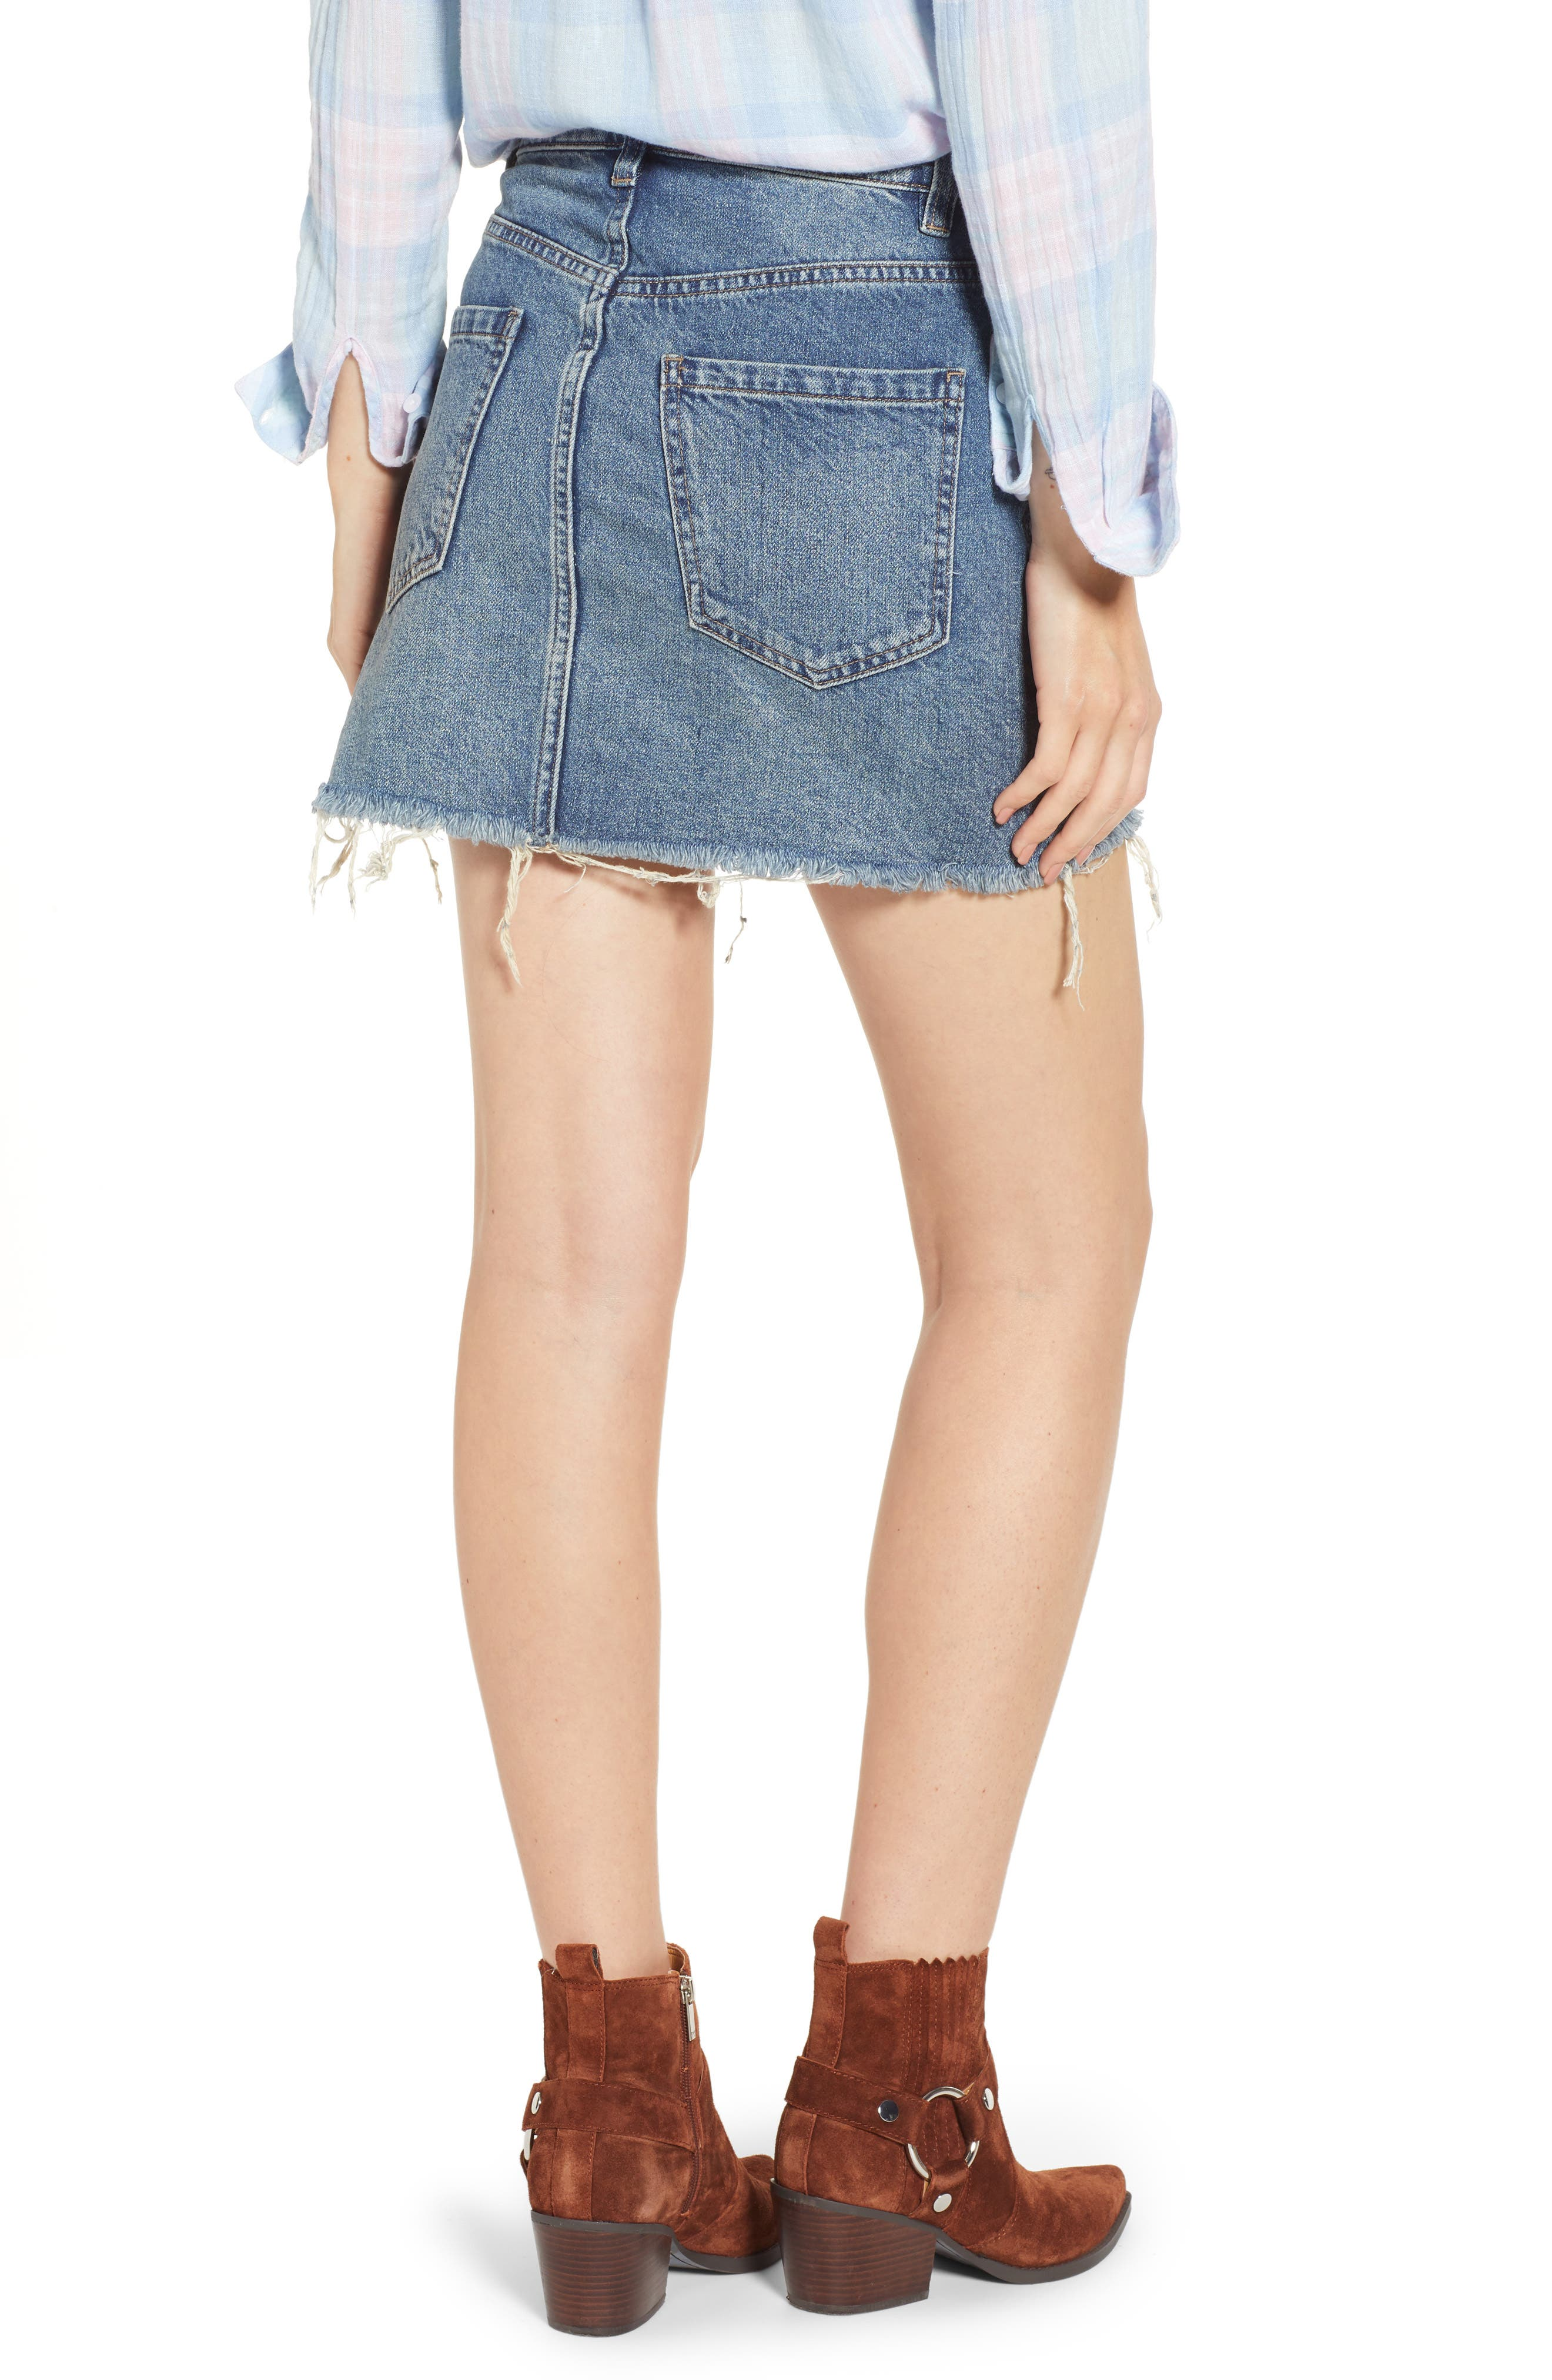 FREE PEOPLE, We the Free by Free People Zip It Up Denim Miniskirt, Alternate thumbnail 2, color, BLUE